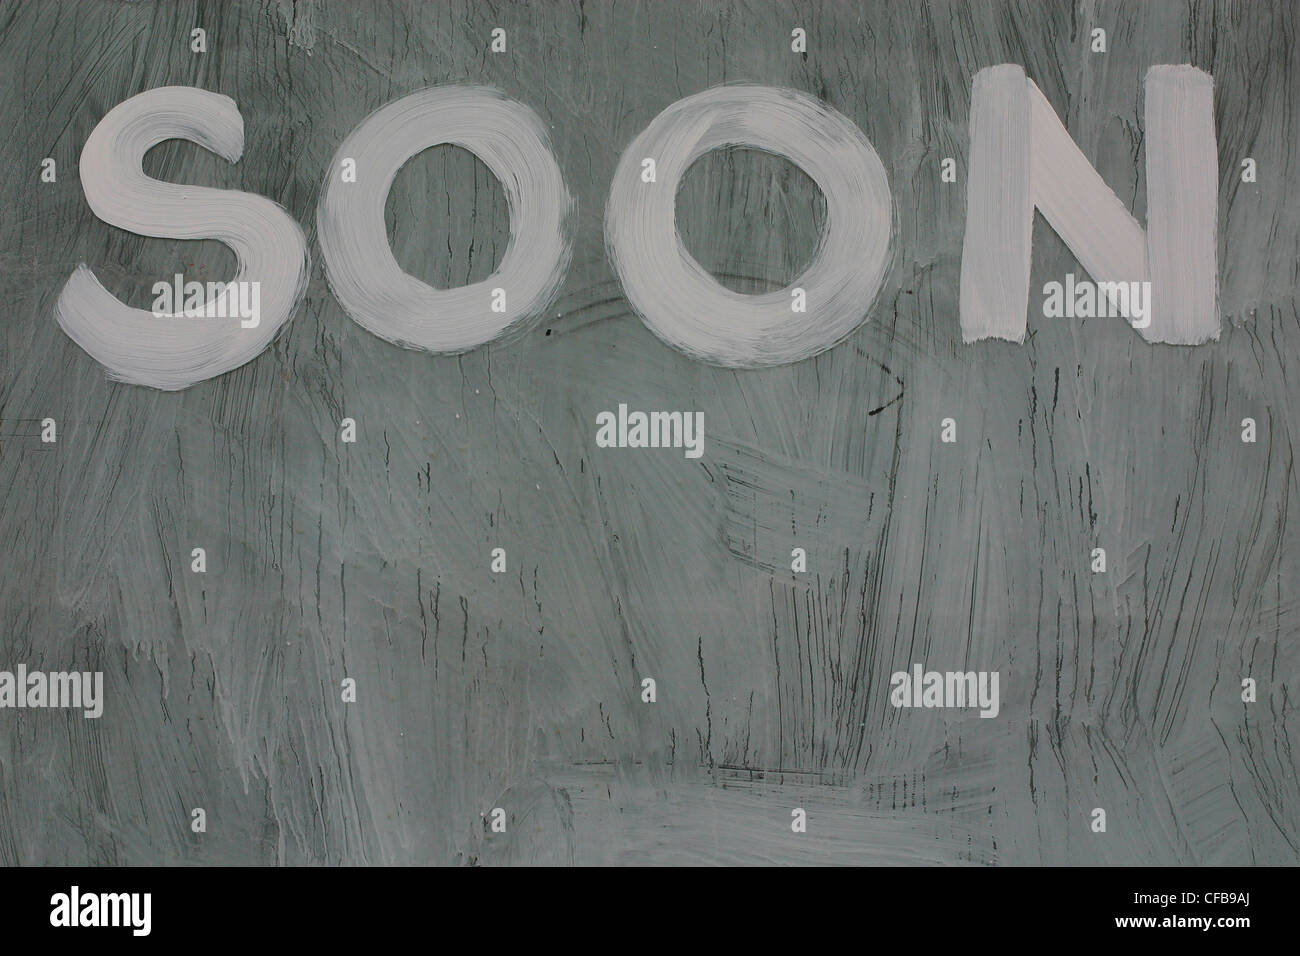 Whitewashed window with the word 'SOON' written on it - Stock Image